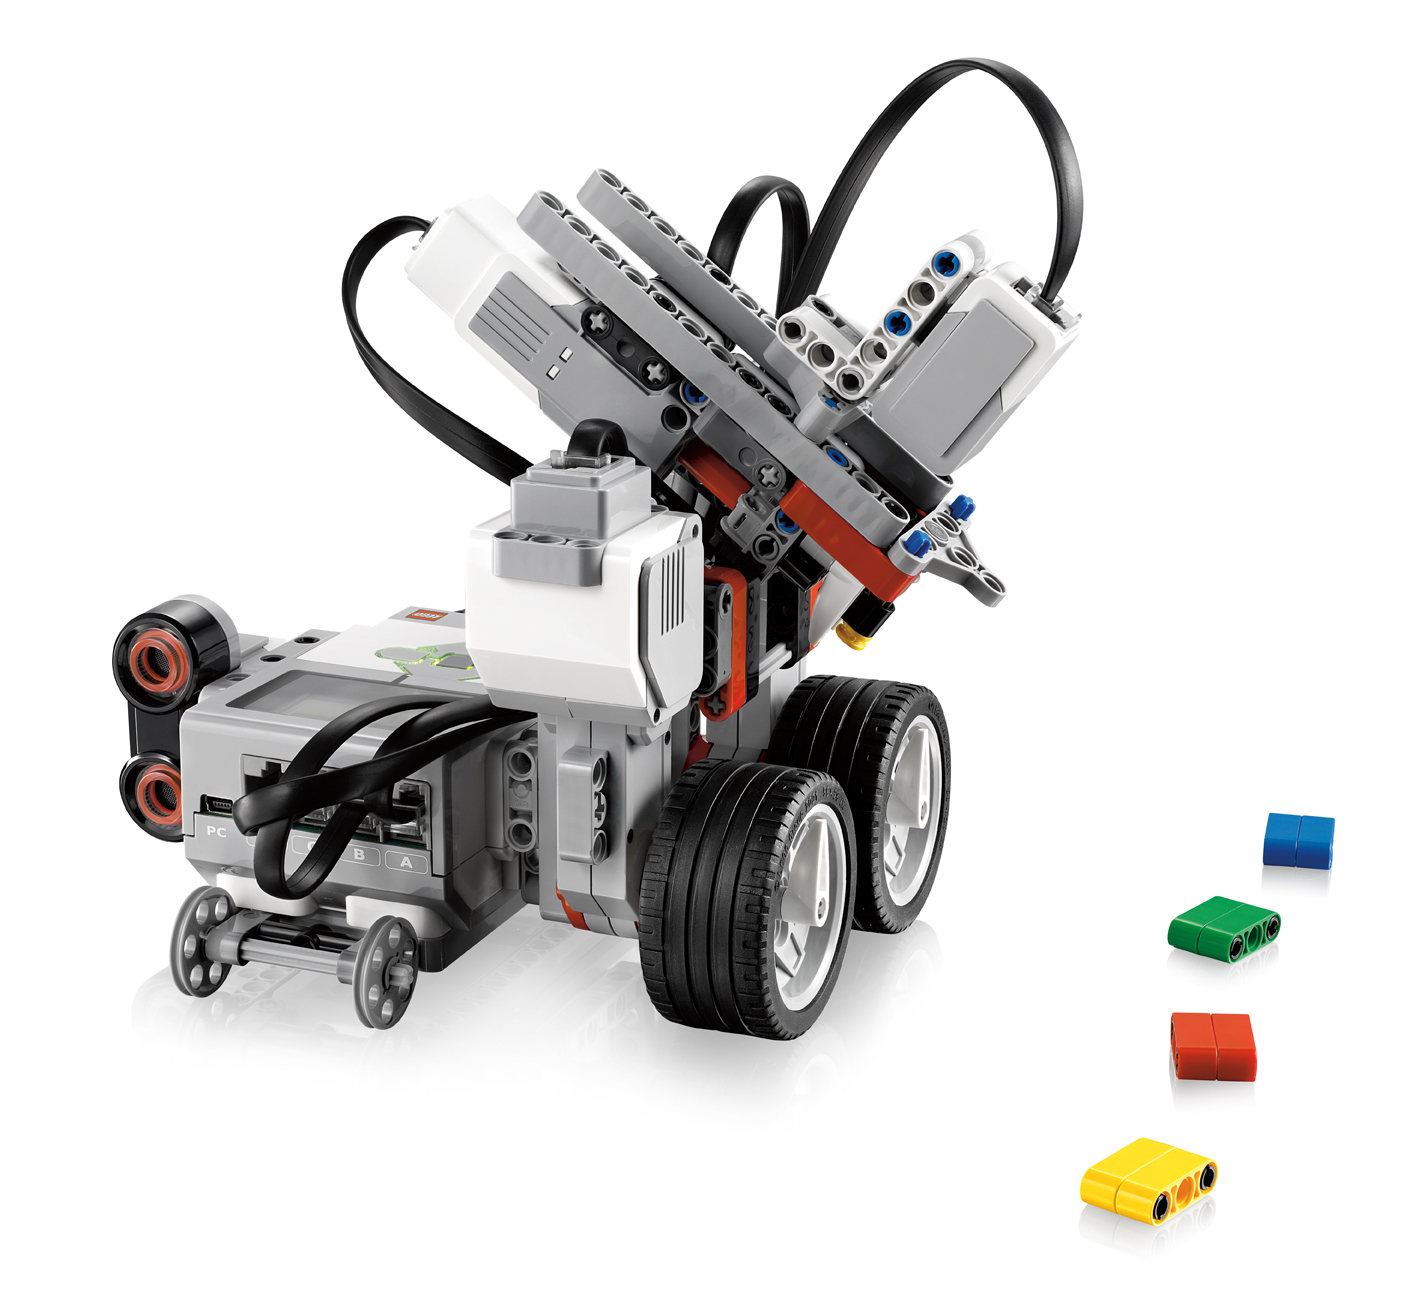 Ev3 Classroom Robot Design : Buy lego mindstorms education ev design engineering